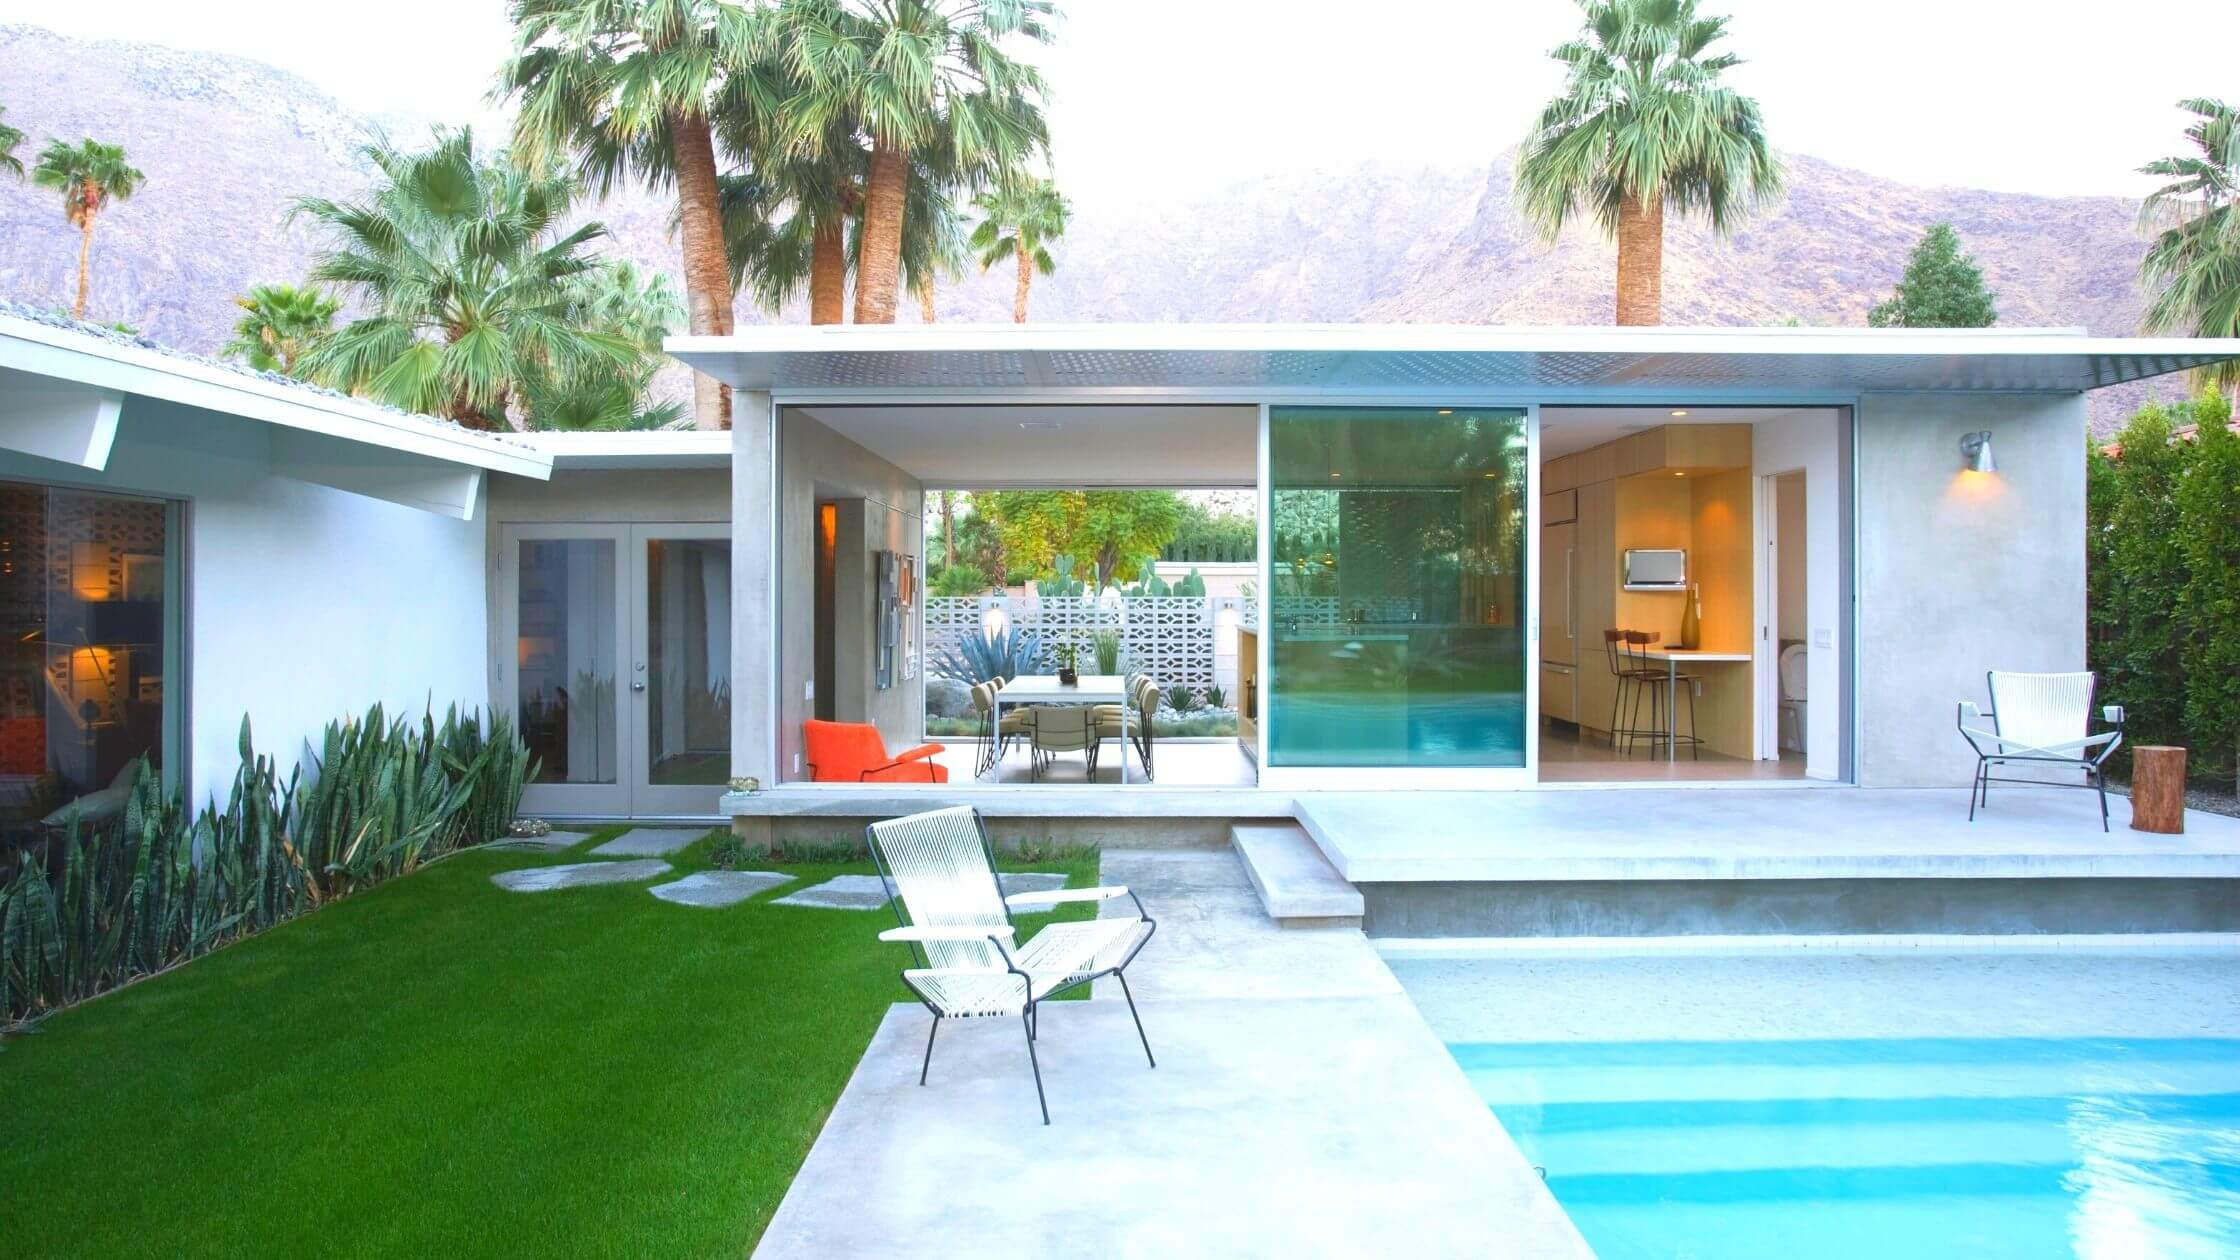 home frontdesign with swimming pool